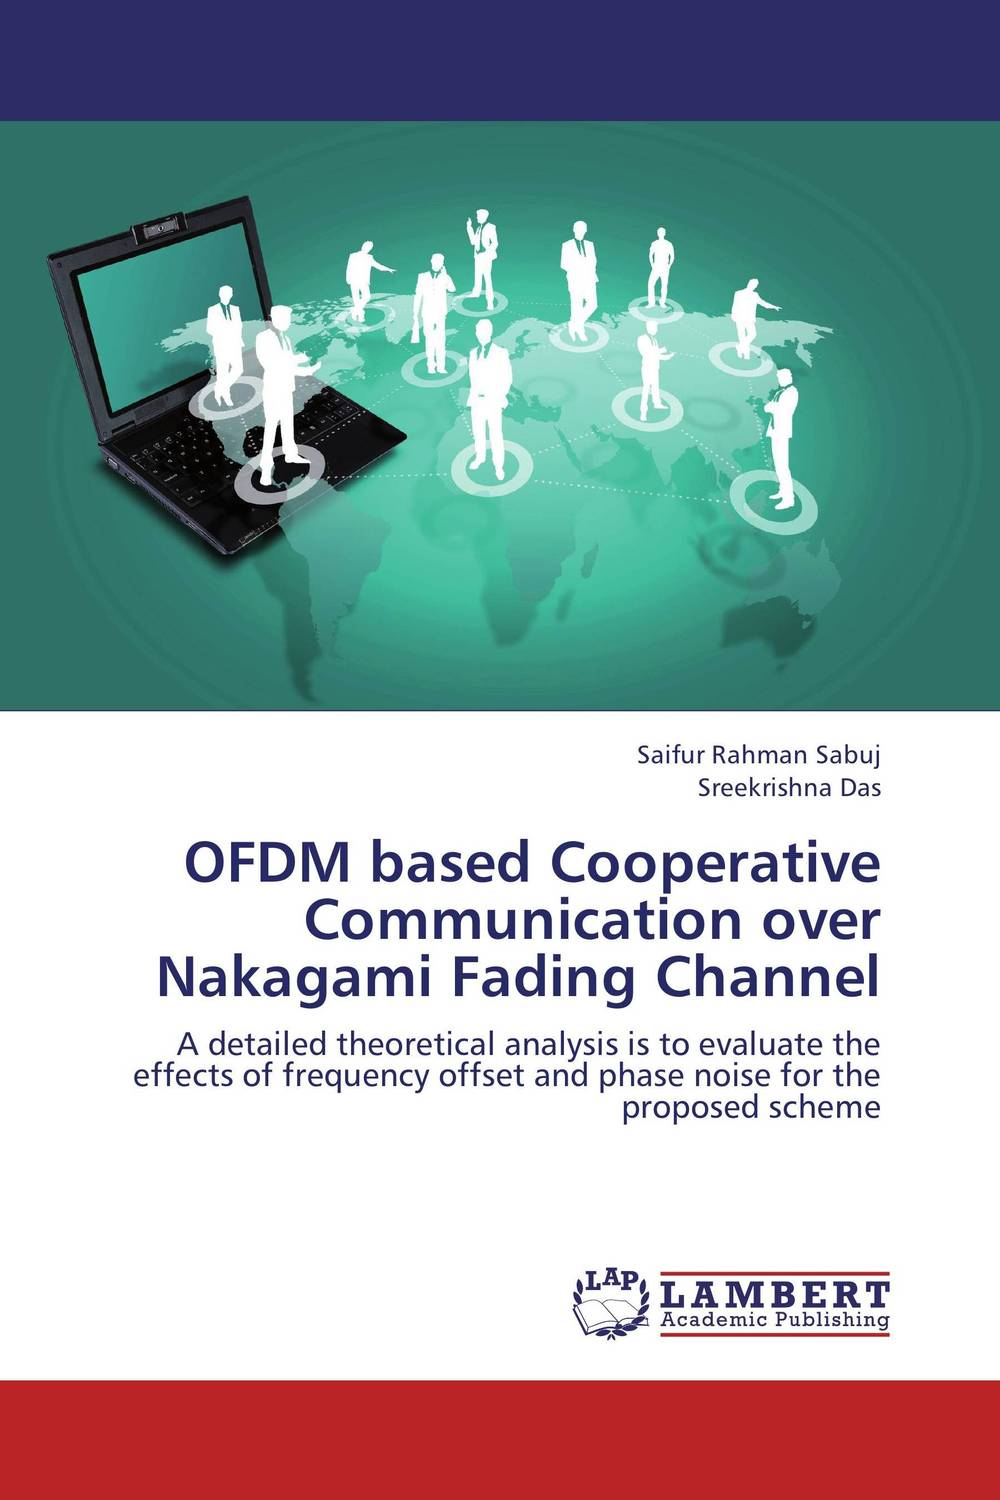 OFDM based Cooperative Communication over Nakagami Fading Channel